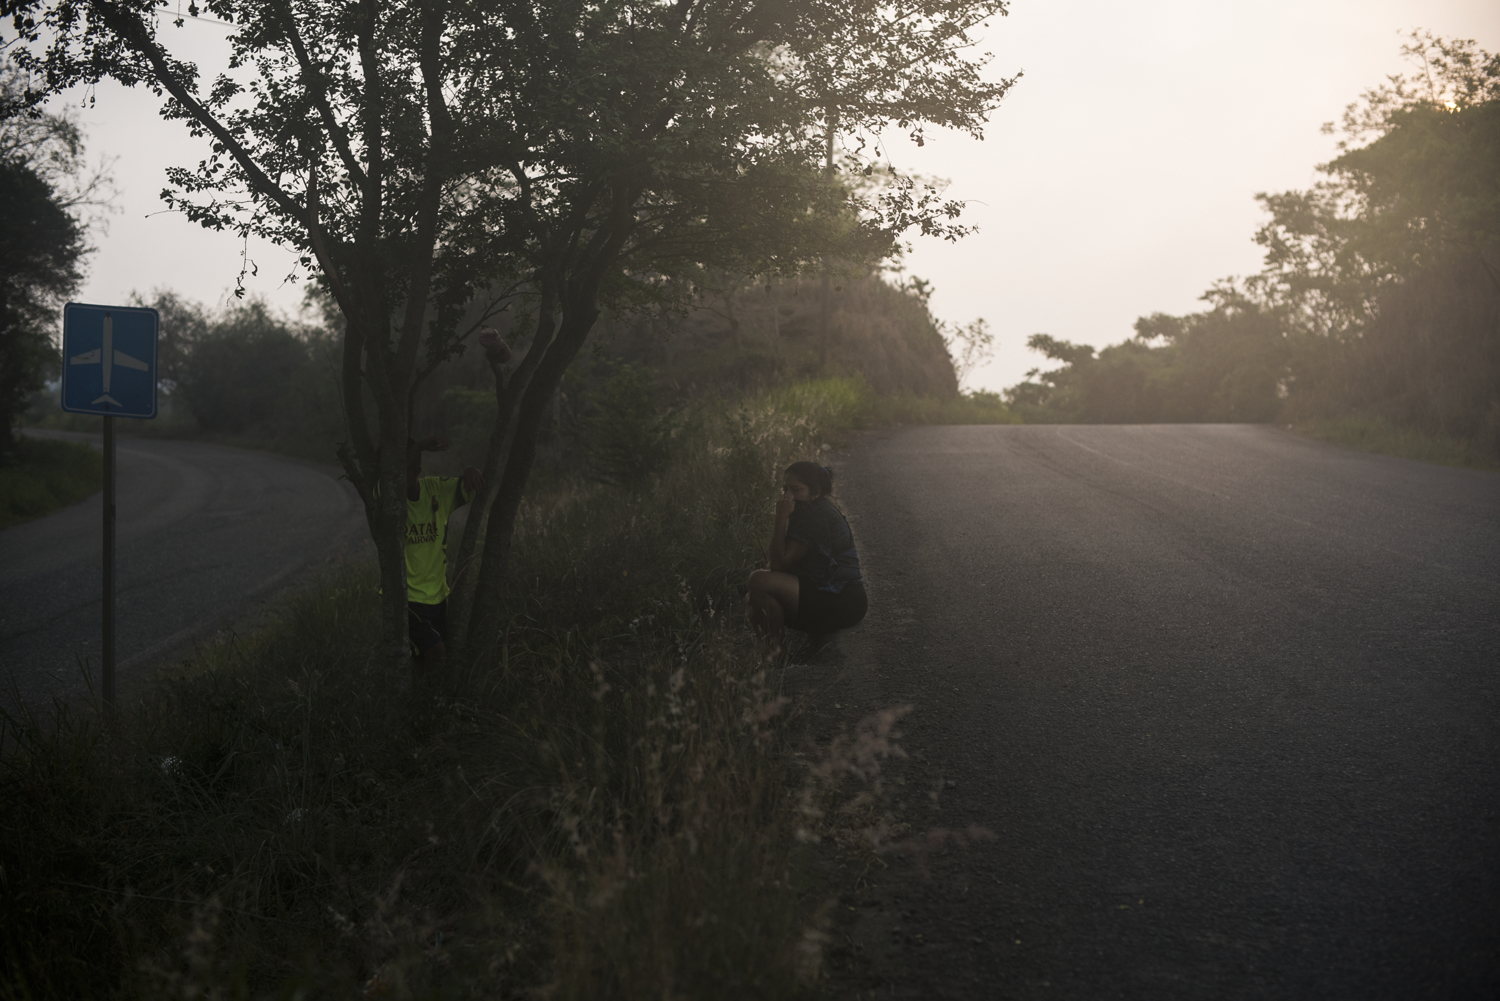 A woman and her son wait for a bus on May 25, 2016 outside of Poza Rica, Veracruz.   Just a few miles from Haliburton's headquarters in Poza Rica, the fields along this road are a favorite for cartels to dump dead bodies. The criminal organizations are increasingly dependent on black market oil revenue and are rumored to have connections with many of the subcontractors who do business with the major oil companies operating in the area.